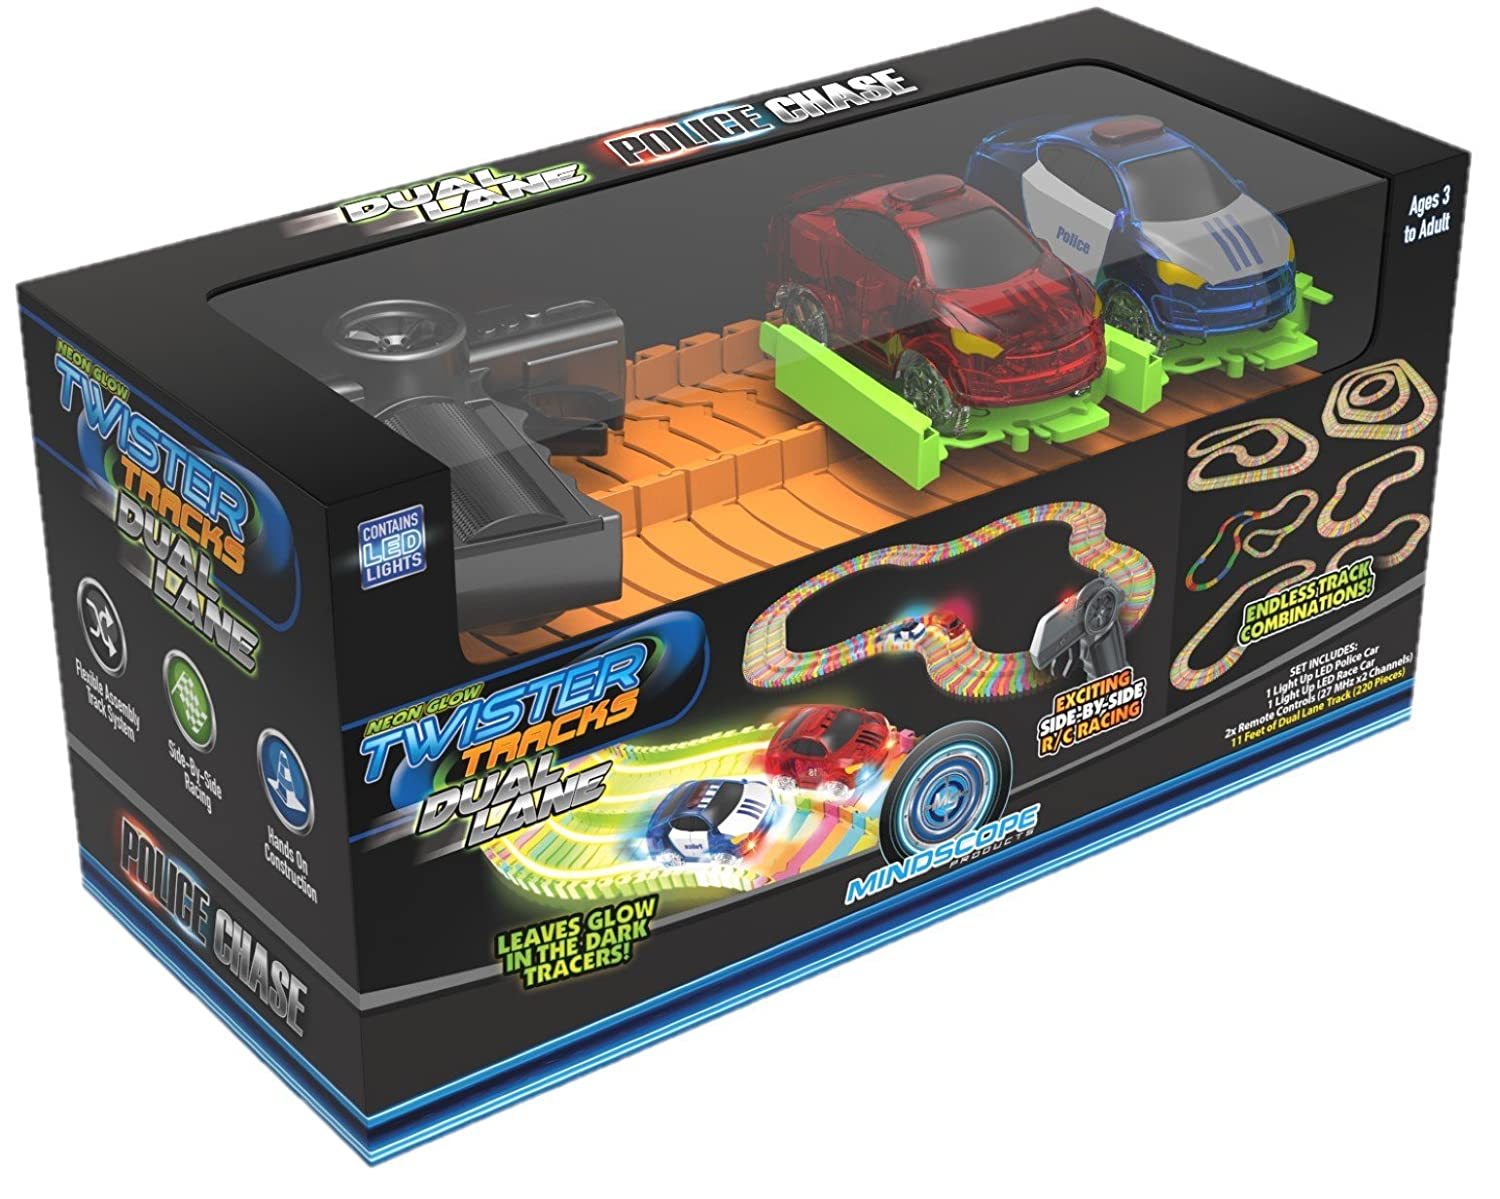 Mindscope Twister Tracks Trax 360 Loop 15 feet Pulse LED of Neon Glow in the Dark Track with Two Light-Up Vehicles Sports Car Series by Mindscope